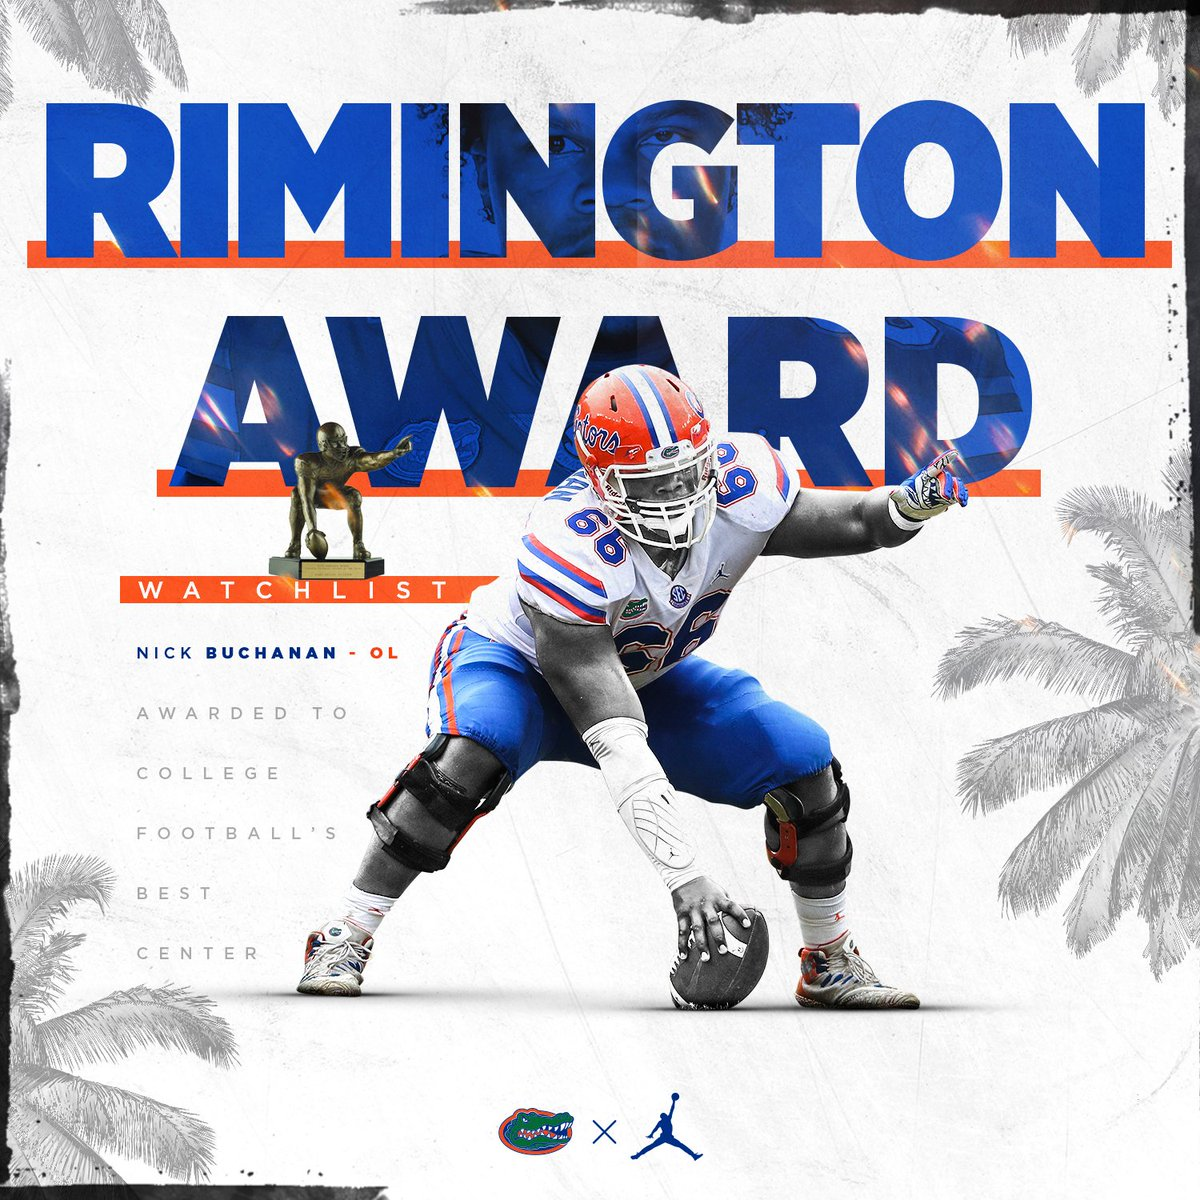 @GatorsFB's photo on Rimington Trophy